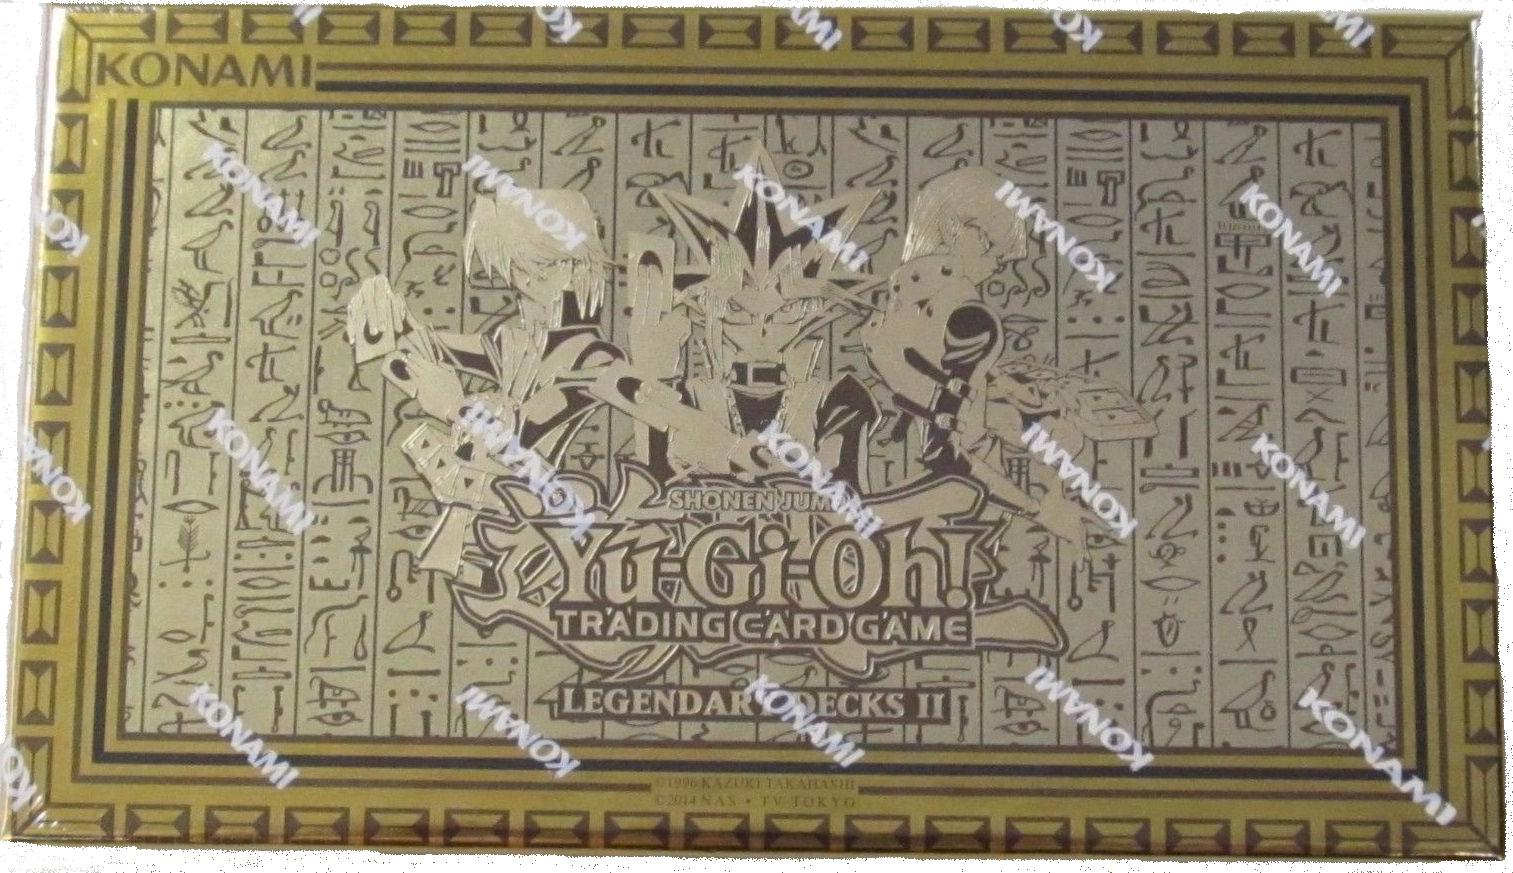 Yu-Gi-Oh! Yugi's Legendary Decks II Collector's Set